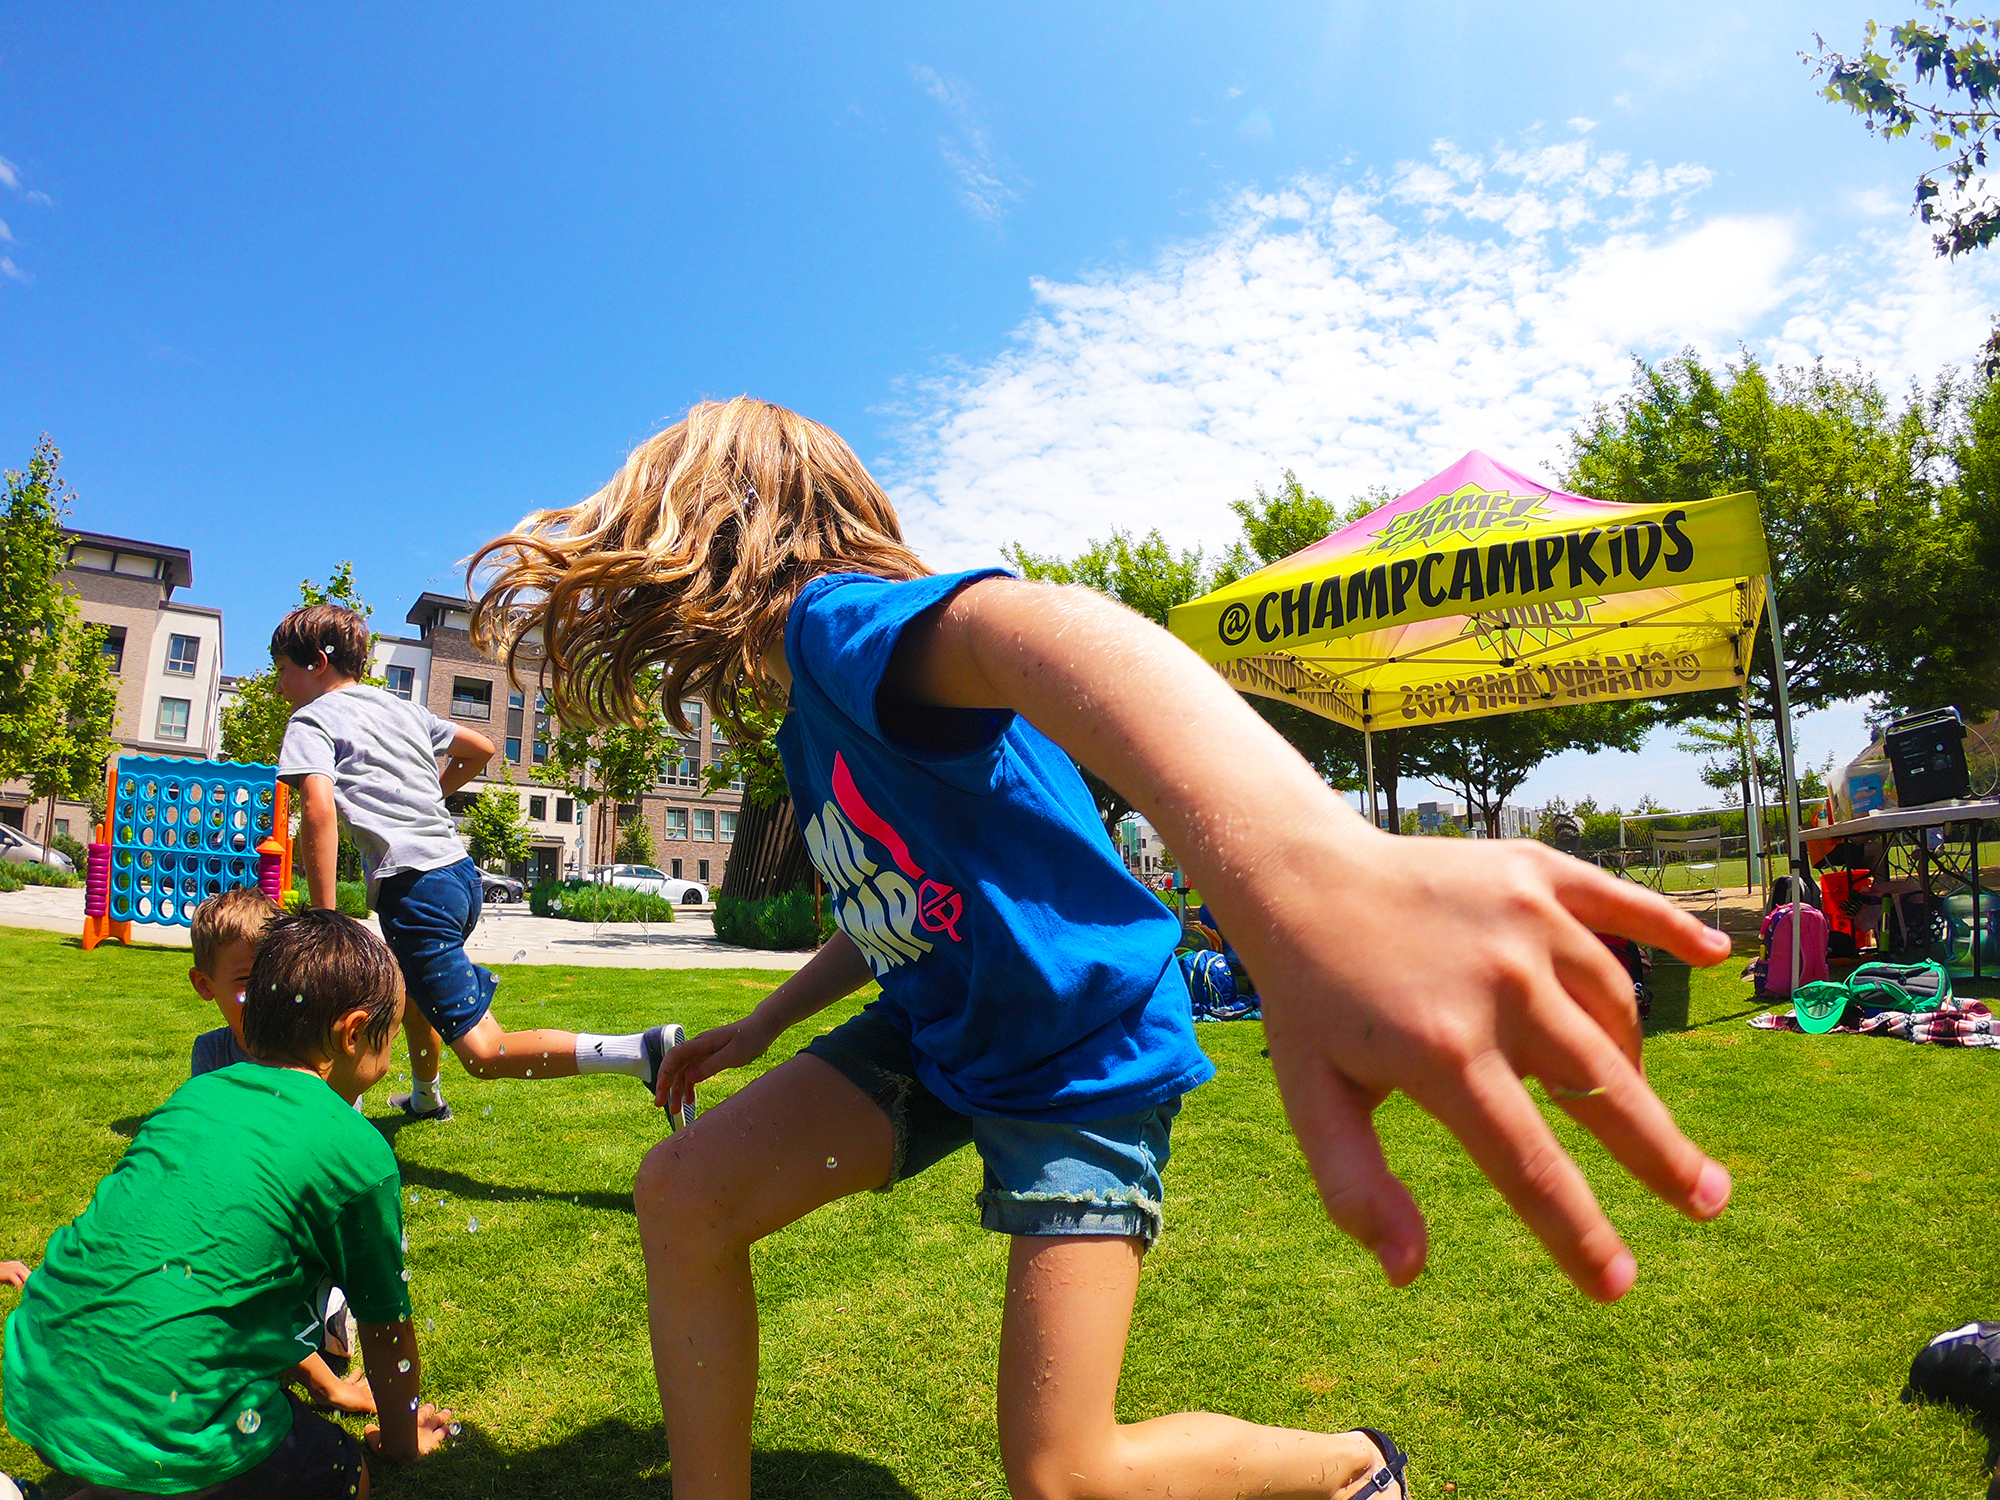 ATTN: PLAYA VISTA - YOUR KIDS' AFTERNOONS ARE ABOUT TO GET A WHOLE LOT CHAMPIER! Beginning FALL 2019, We'll be offering afternoon camps to Playa Vista Elementary Students, and the surrounding community! Peek below to find out how to add a little extra play to your kid's (after school) day!